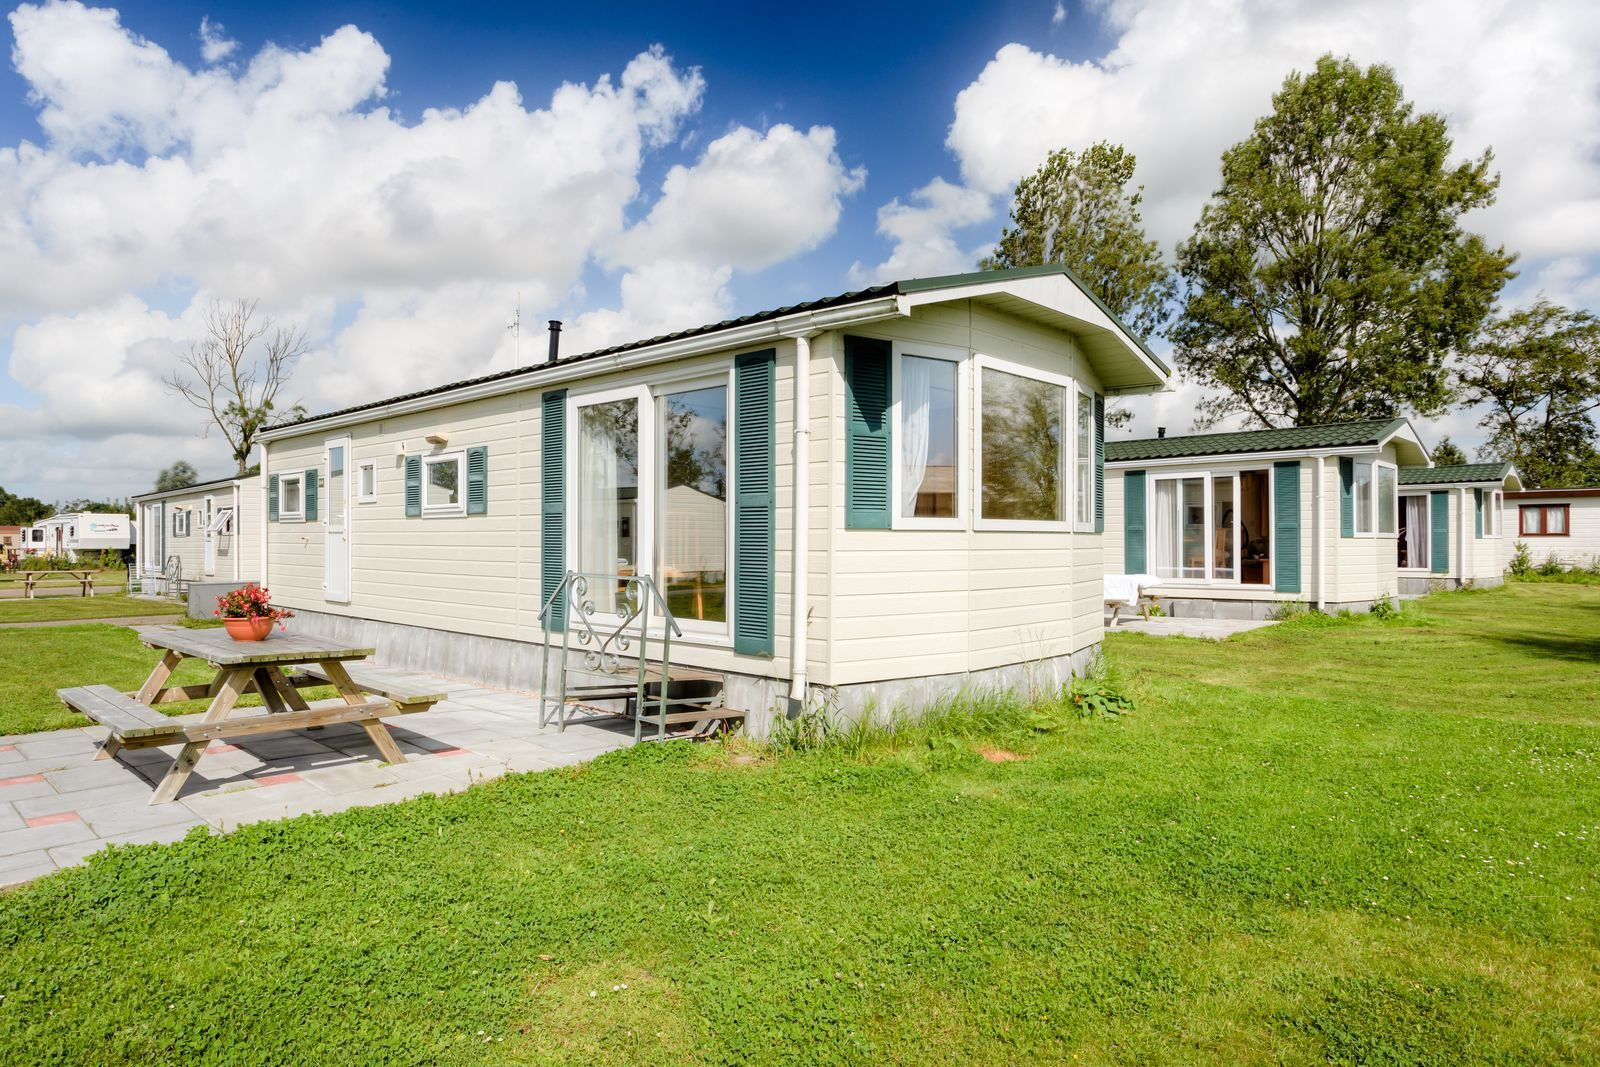 Renting a mobile home in The Netherlands